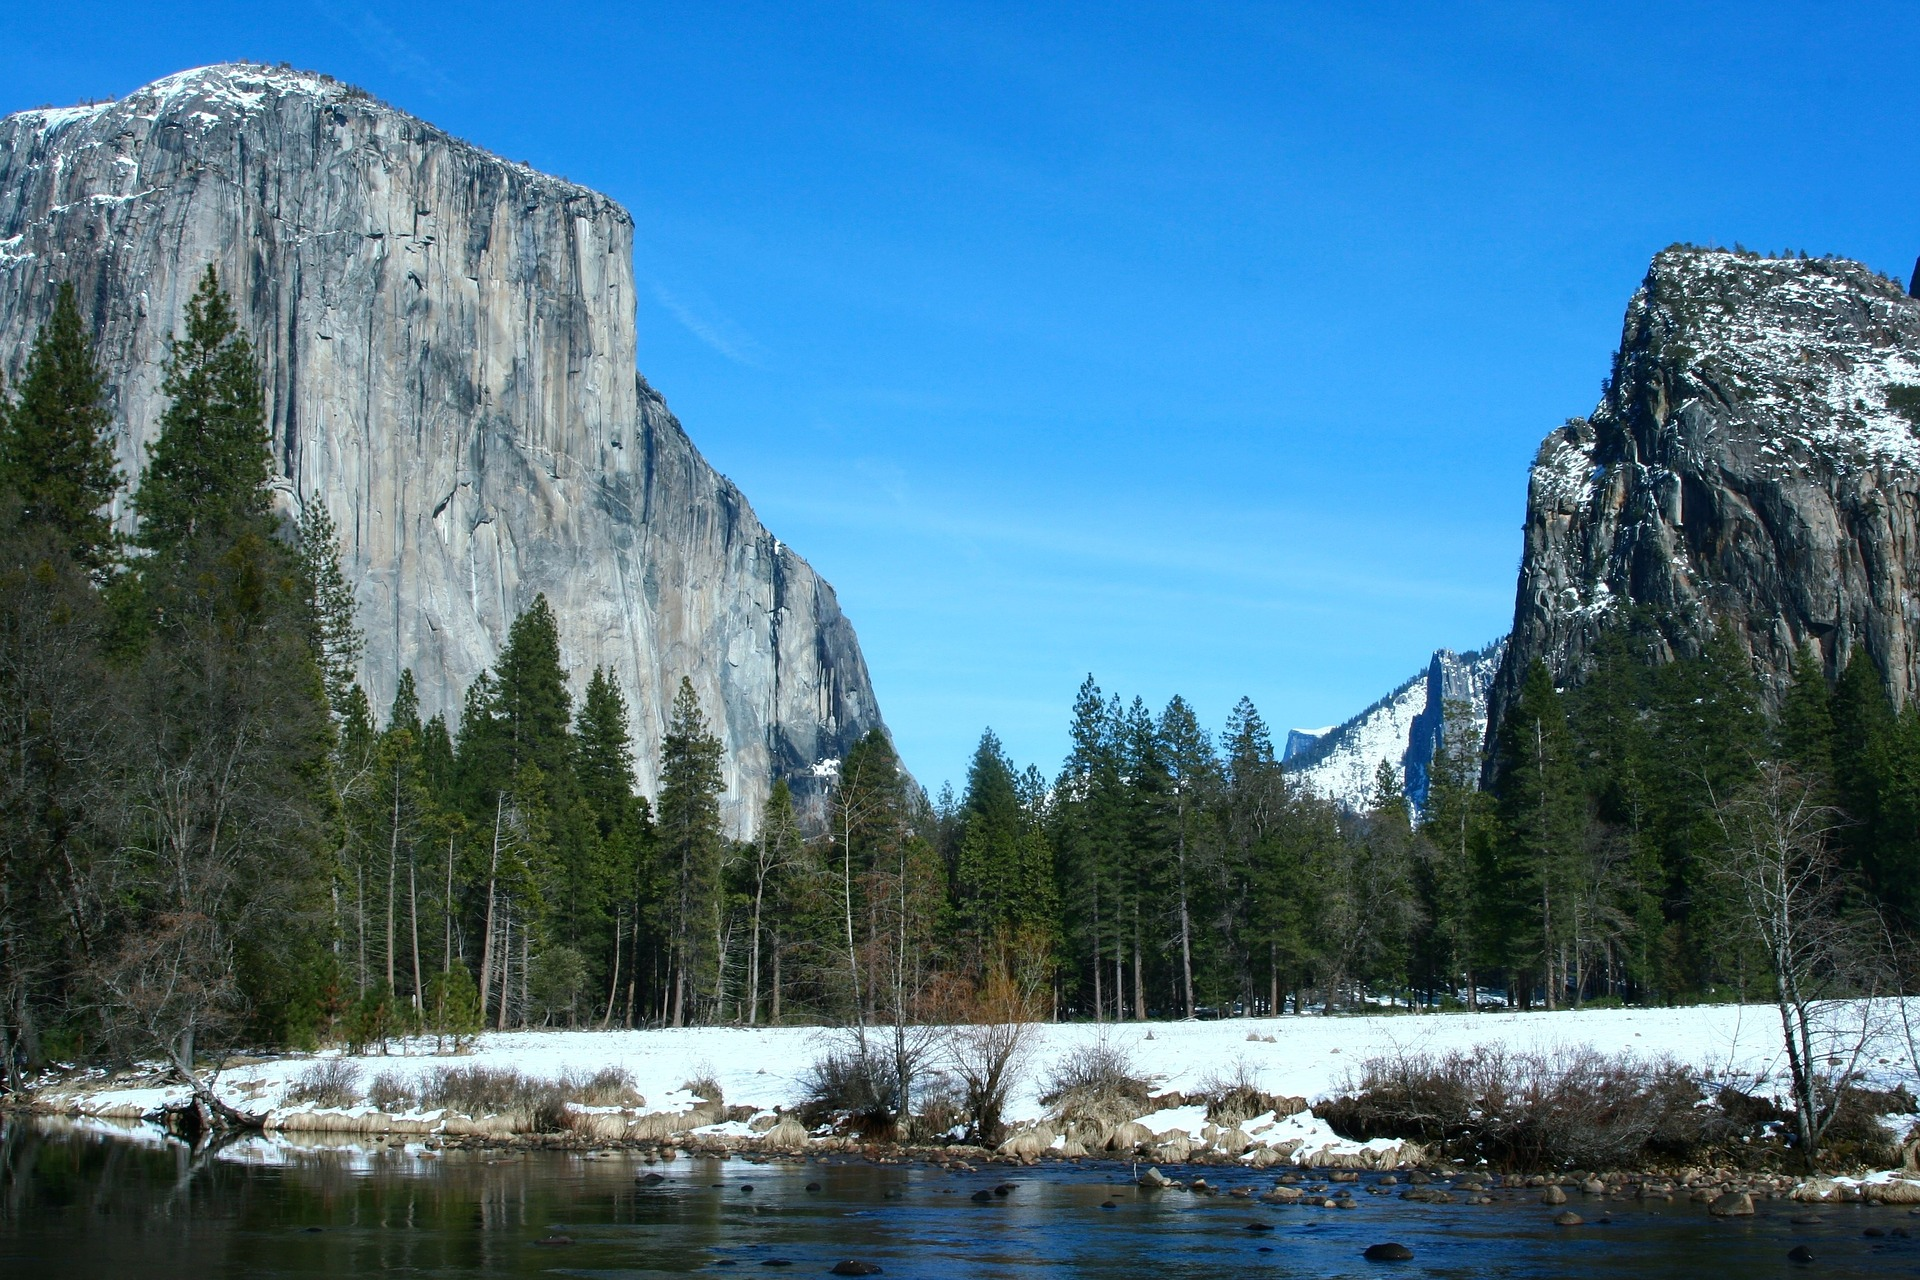 El Captain, rock formation in Yosemite National Park in California, USA